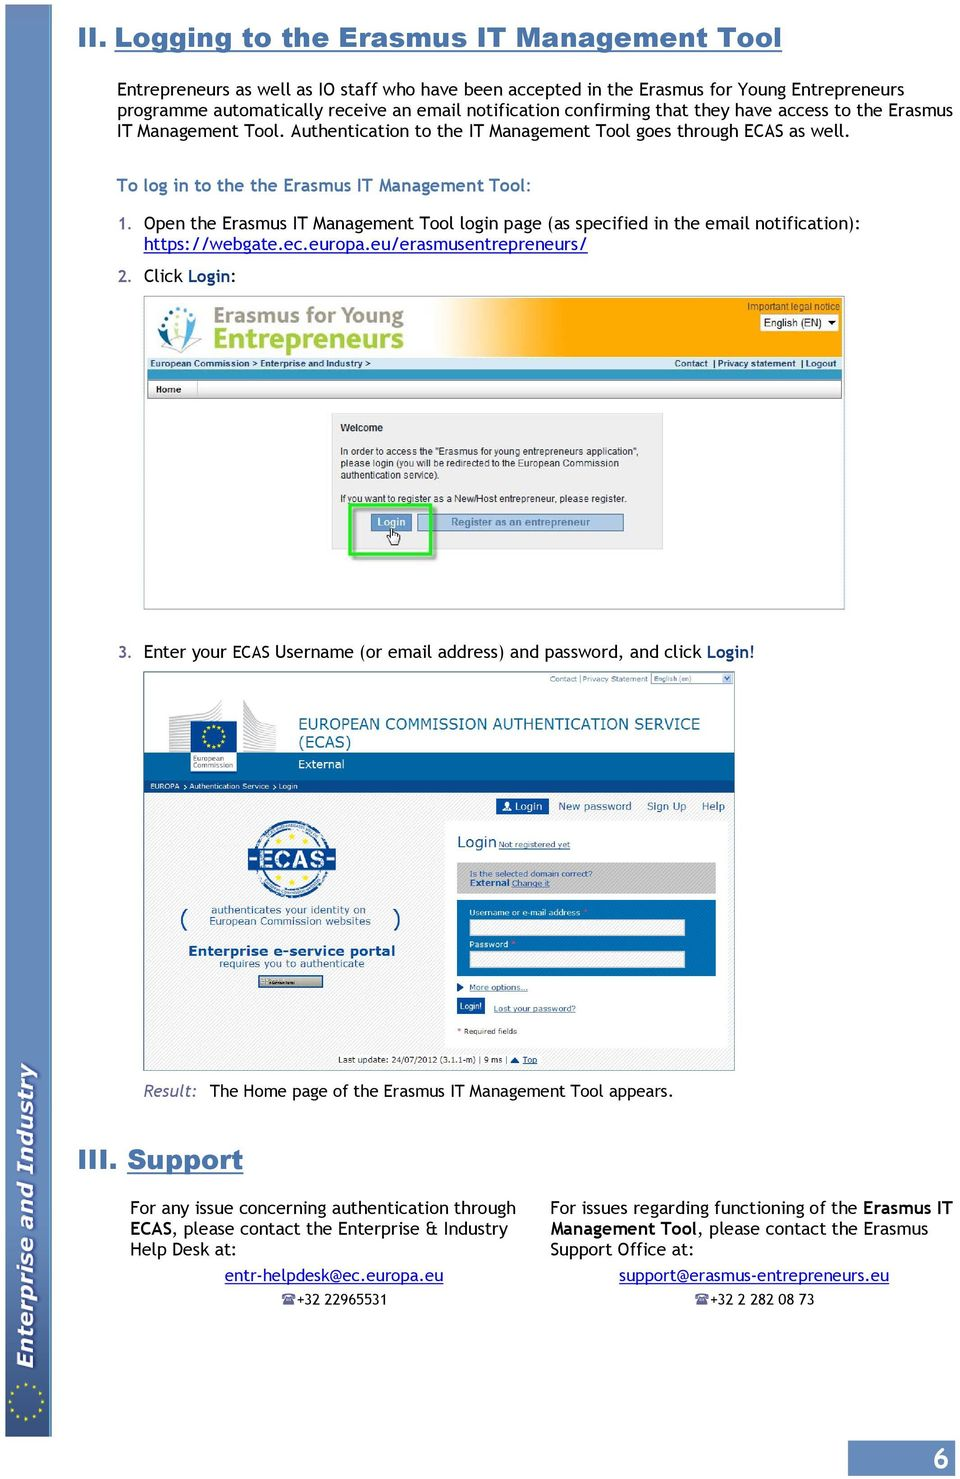 Open the Erasmus IT Management Tool login page (as specified in the email notification): https://webgate.ec.europa.eu/erasmusentrepreneurs/ 2. Click Login: 3.